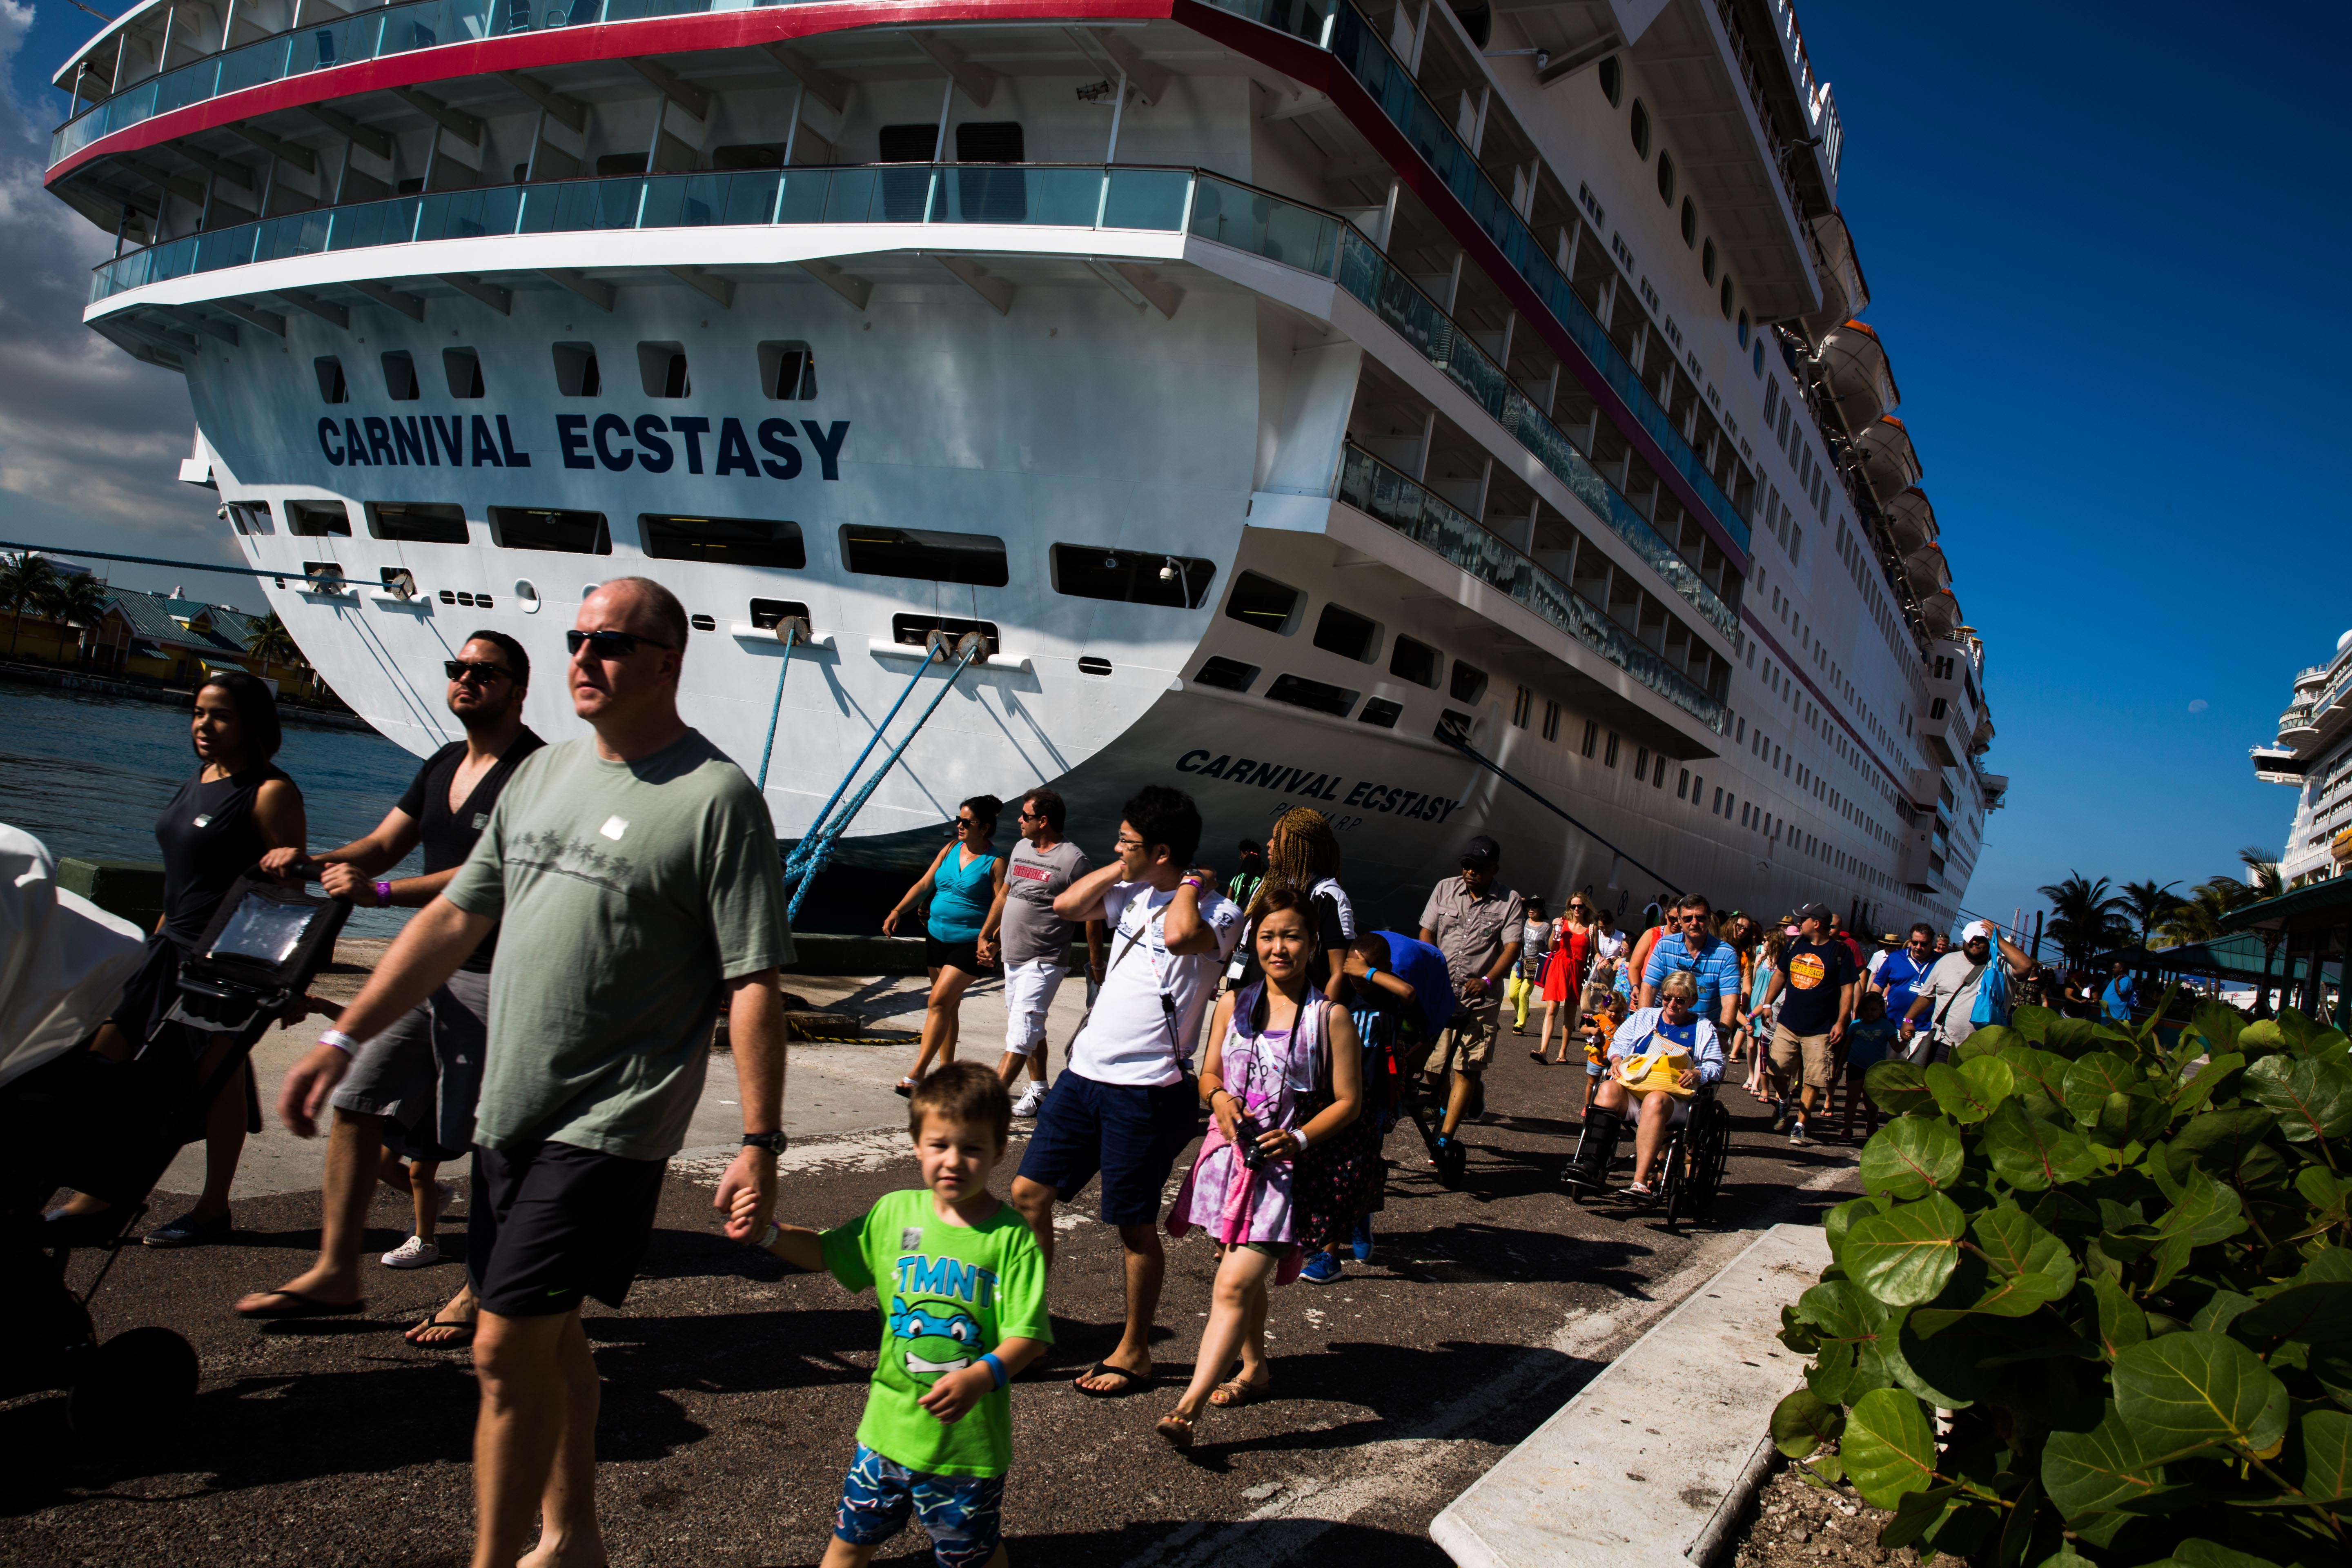 An American Industry Under Foreign Flag - Us flagged cruise ships